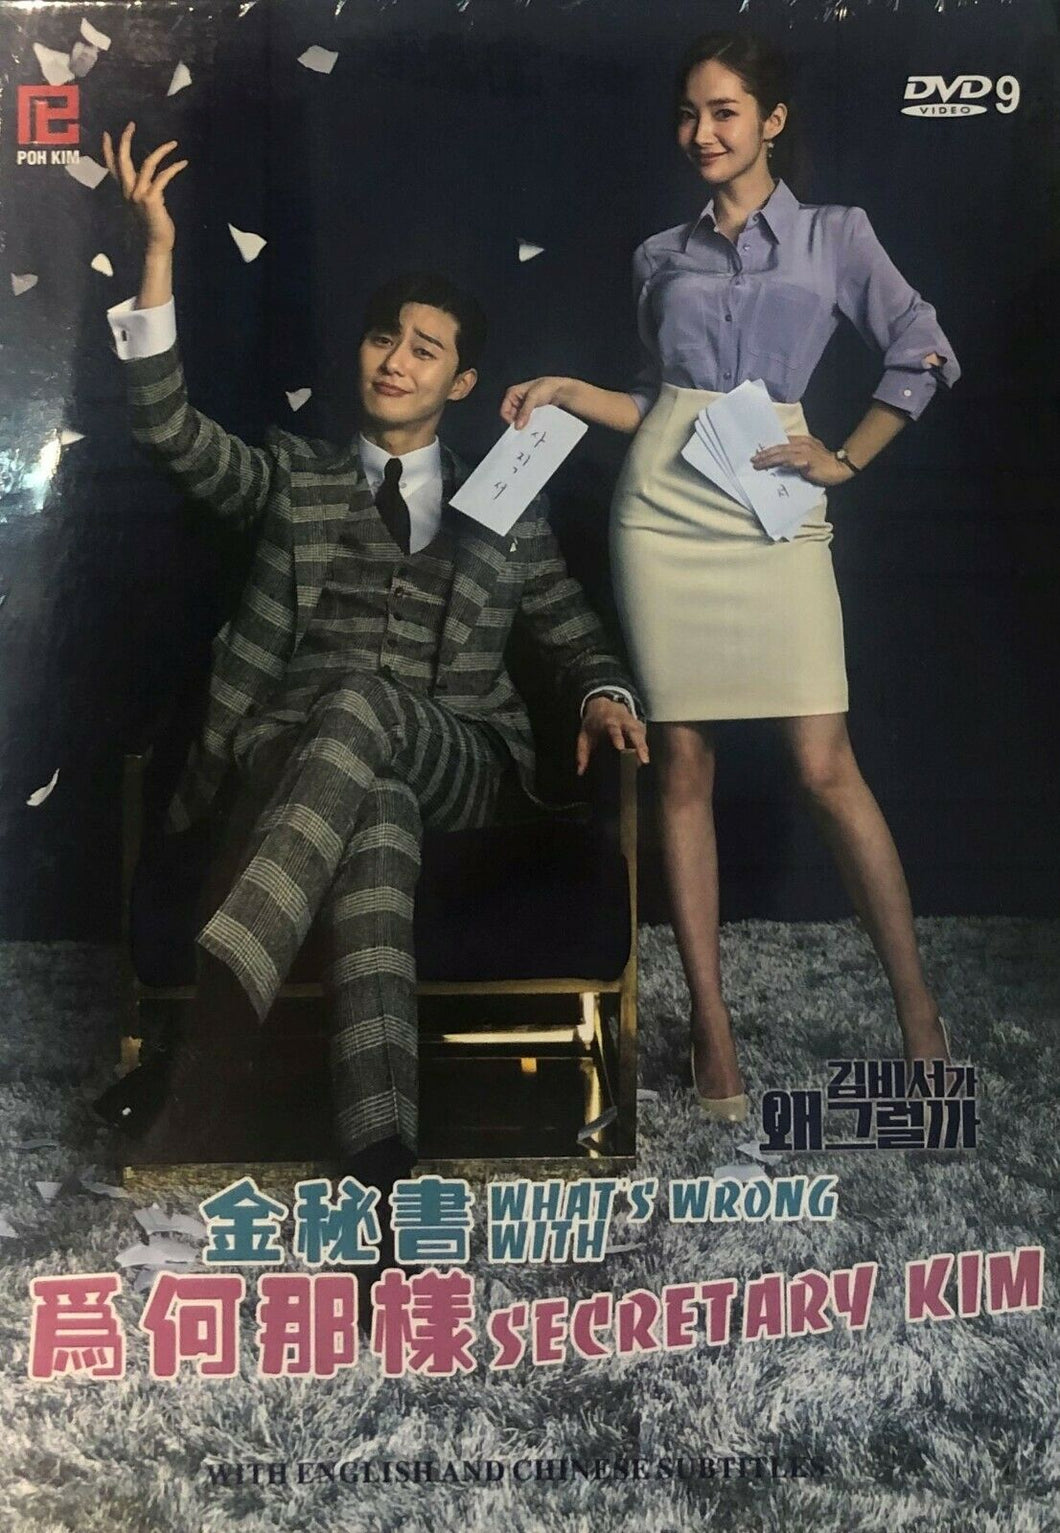 WHAT'S WRONG WITH SECRETARY KIM 2018 KOREAN TV (1-16) DVD ENGLISH SUBTITLES (REGION FREE)  金秘書為何那樣